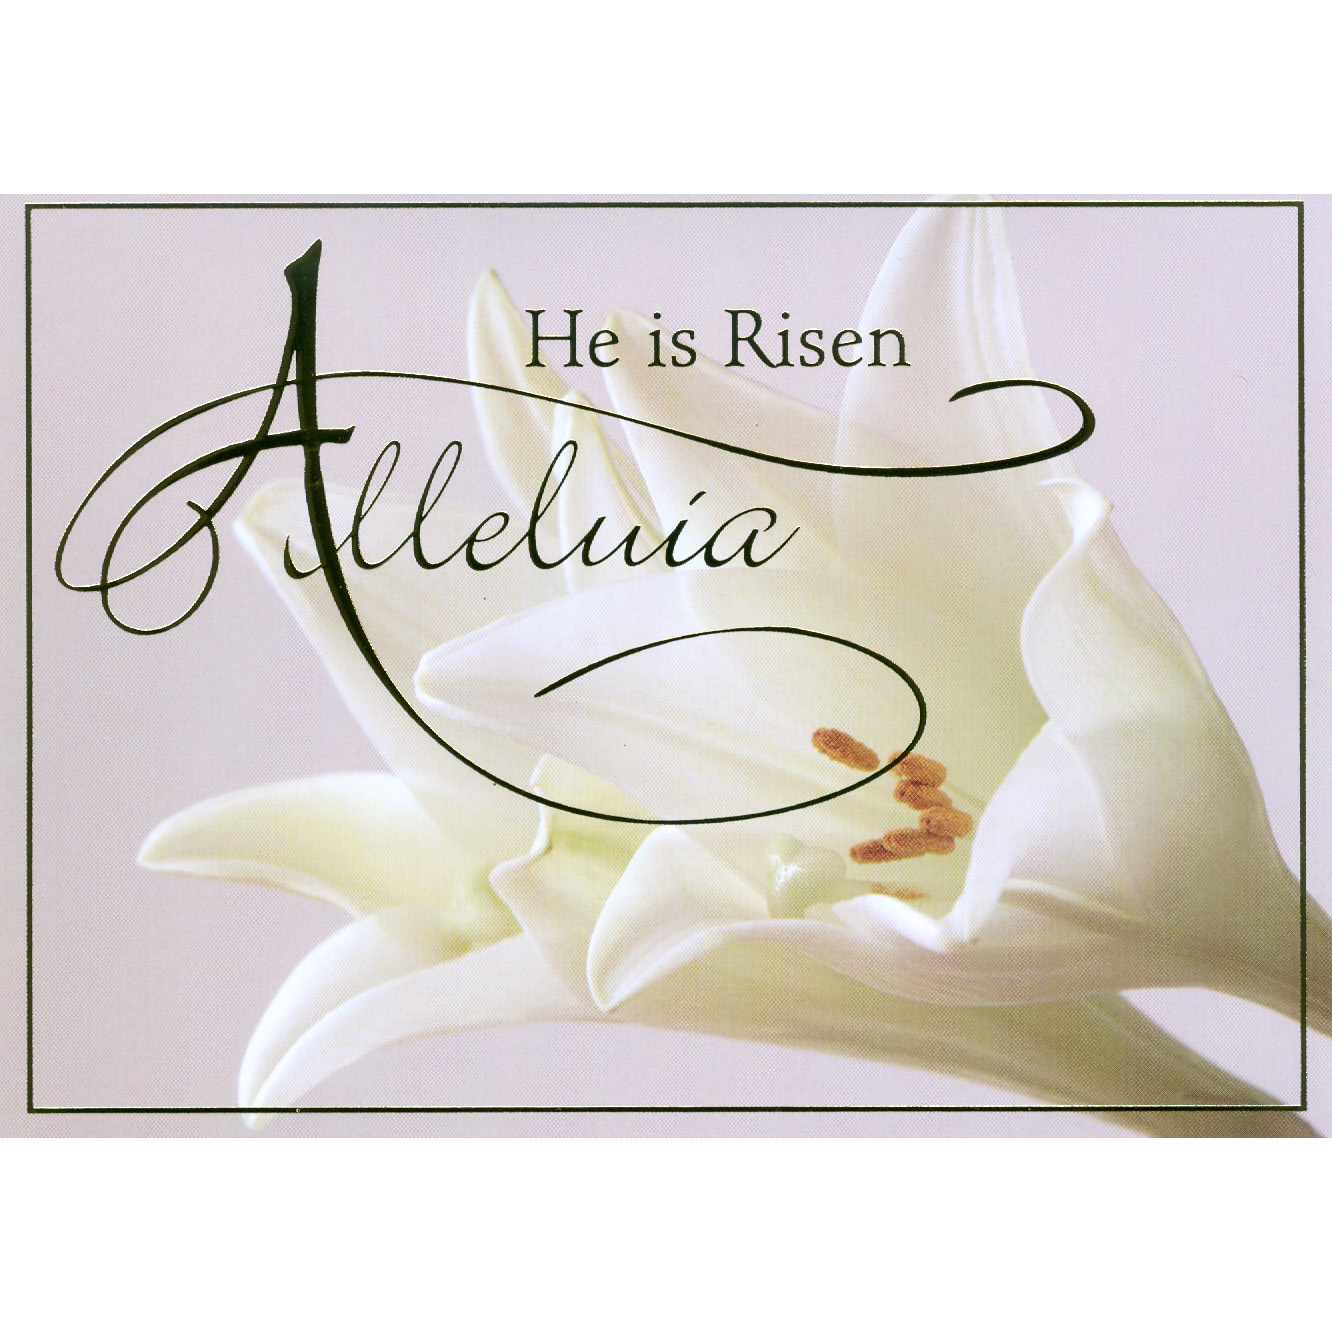 Alleluia Easter Boxed Cards 25box St Andrews Book Gift